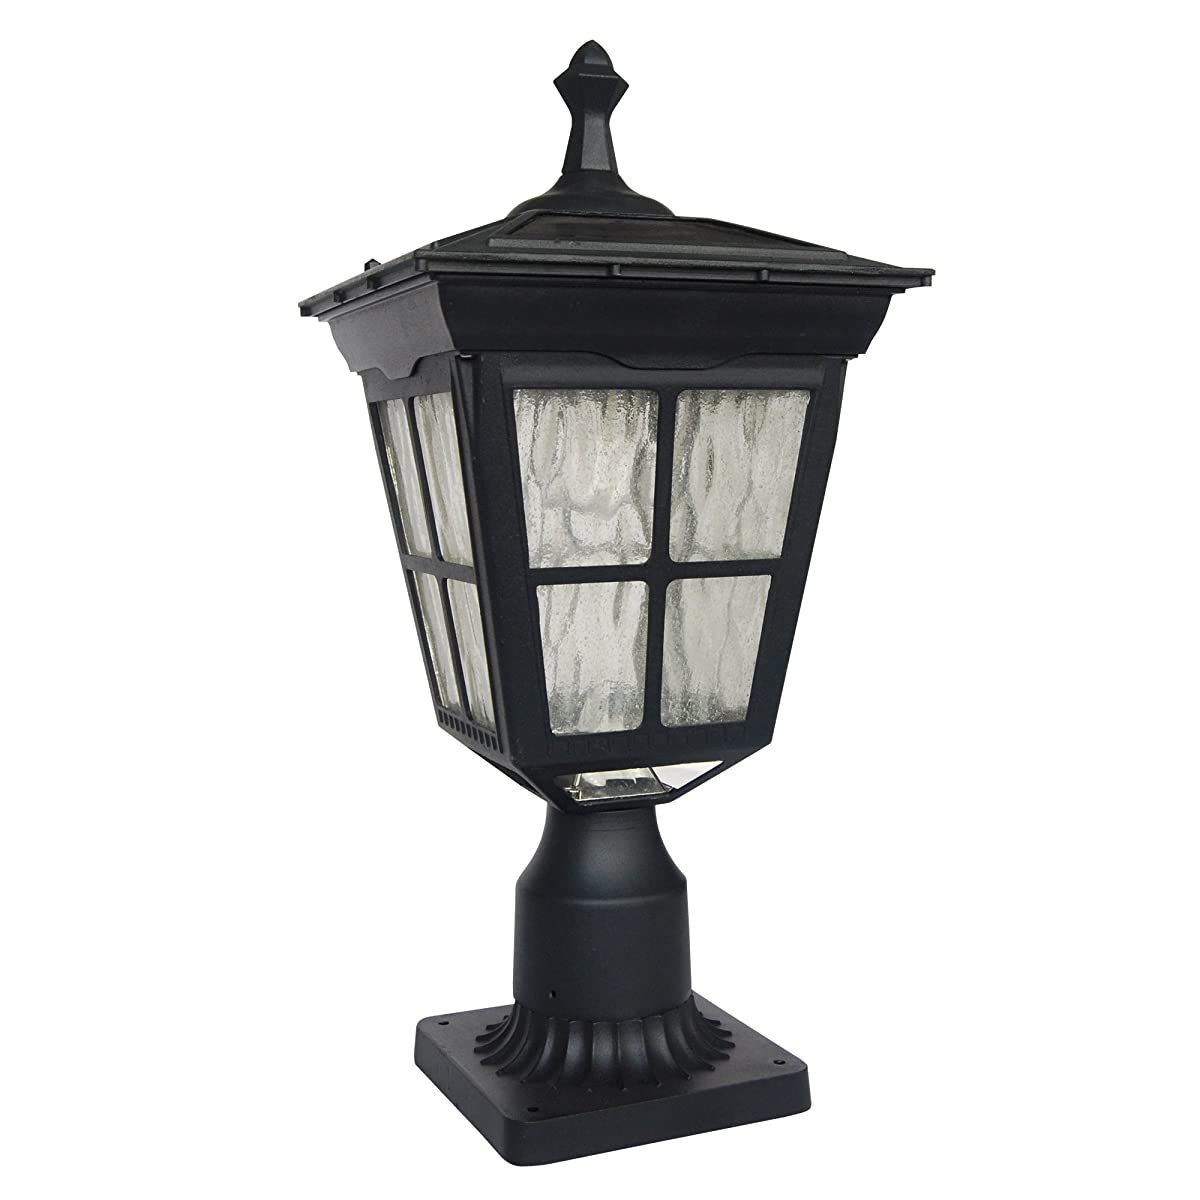 Kemeco ST4311AQ LED Cast Aluminum Solar Post Light Fixture with 3-Inch Fitter Base for Outdoor Garden Post Pole Mount